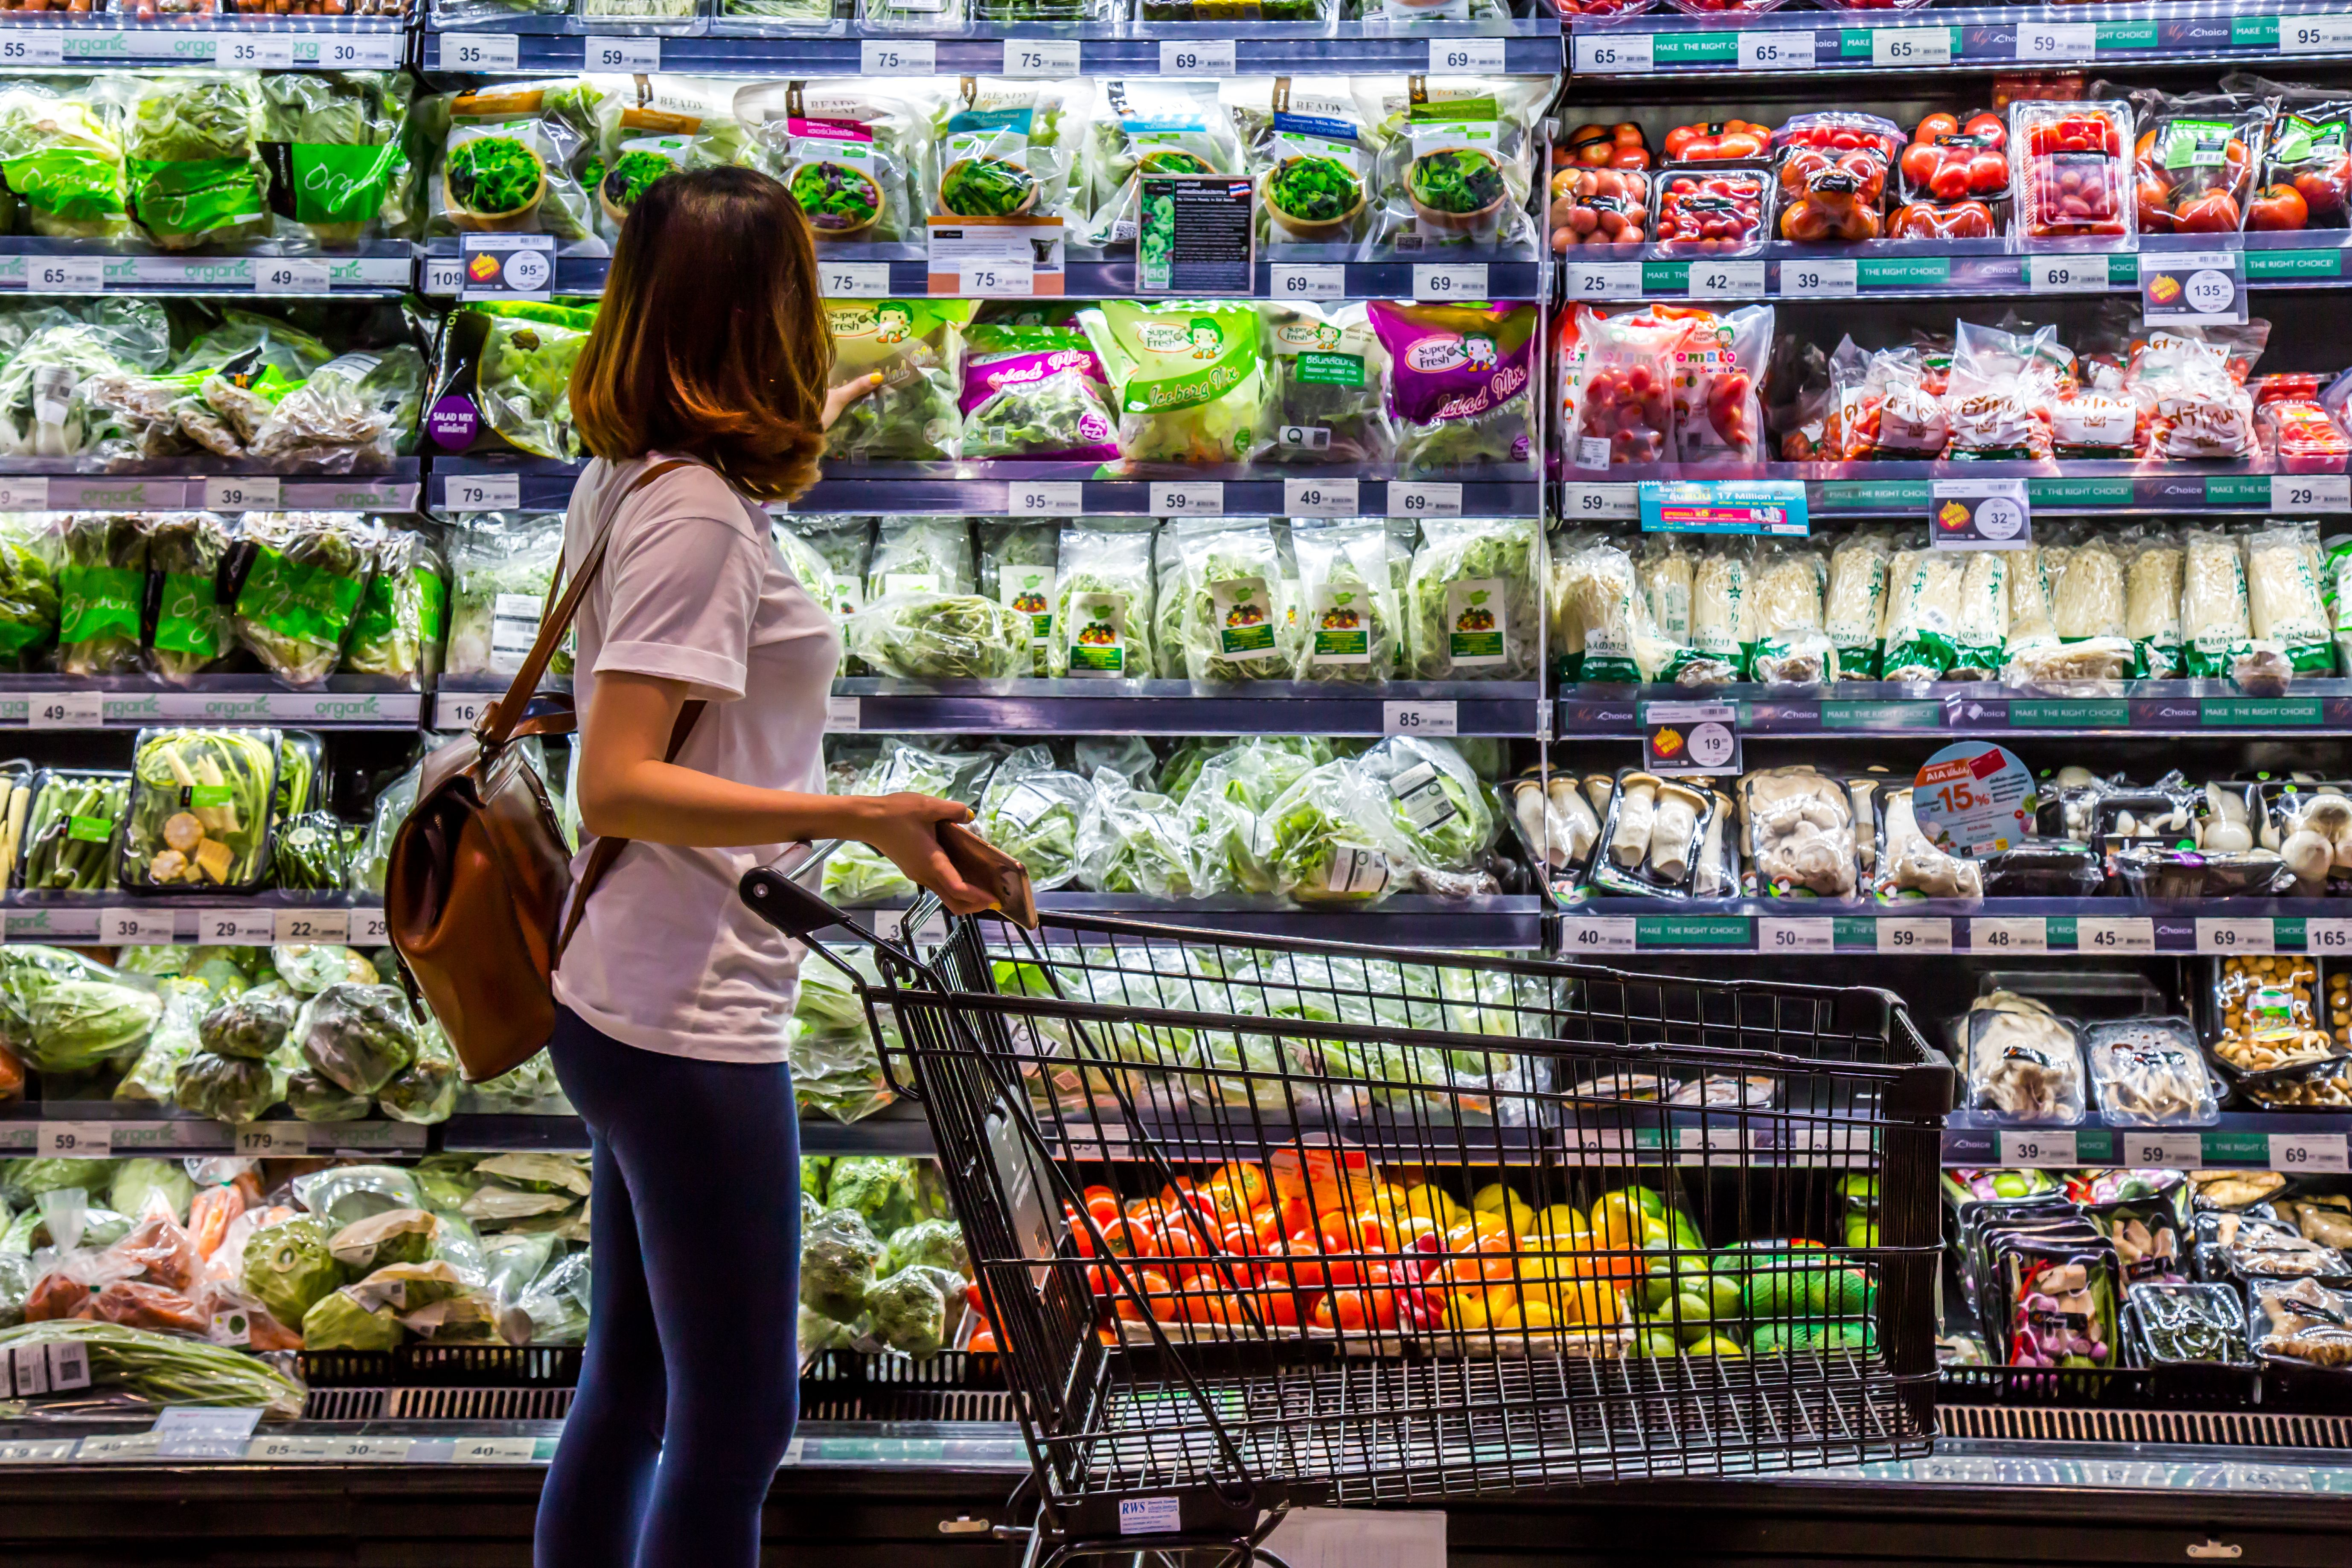 A woman shopping in the grocery. | Source: Shutterstock